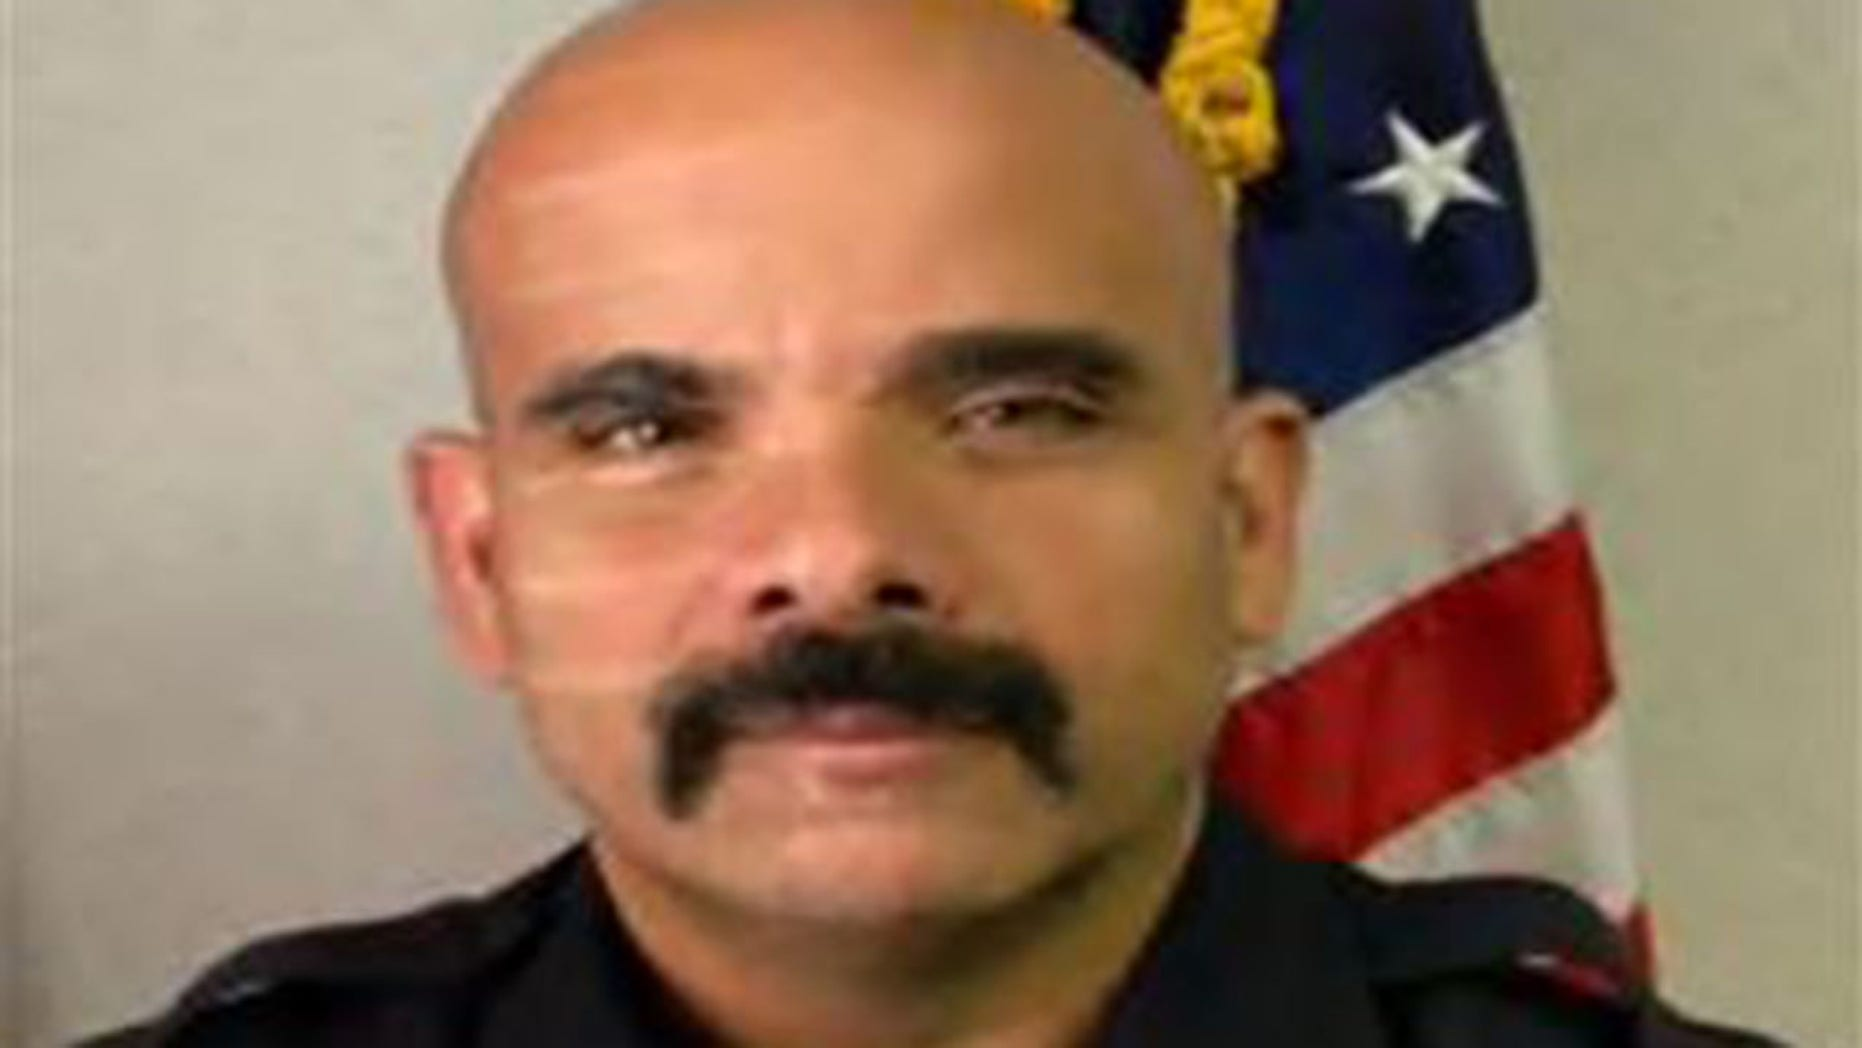 Raimundo Atesiano, a former police chief in Florida, will serve three years in prison for a conspiracy in his department to frame black people for crimes they did not commit.